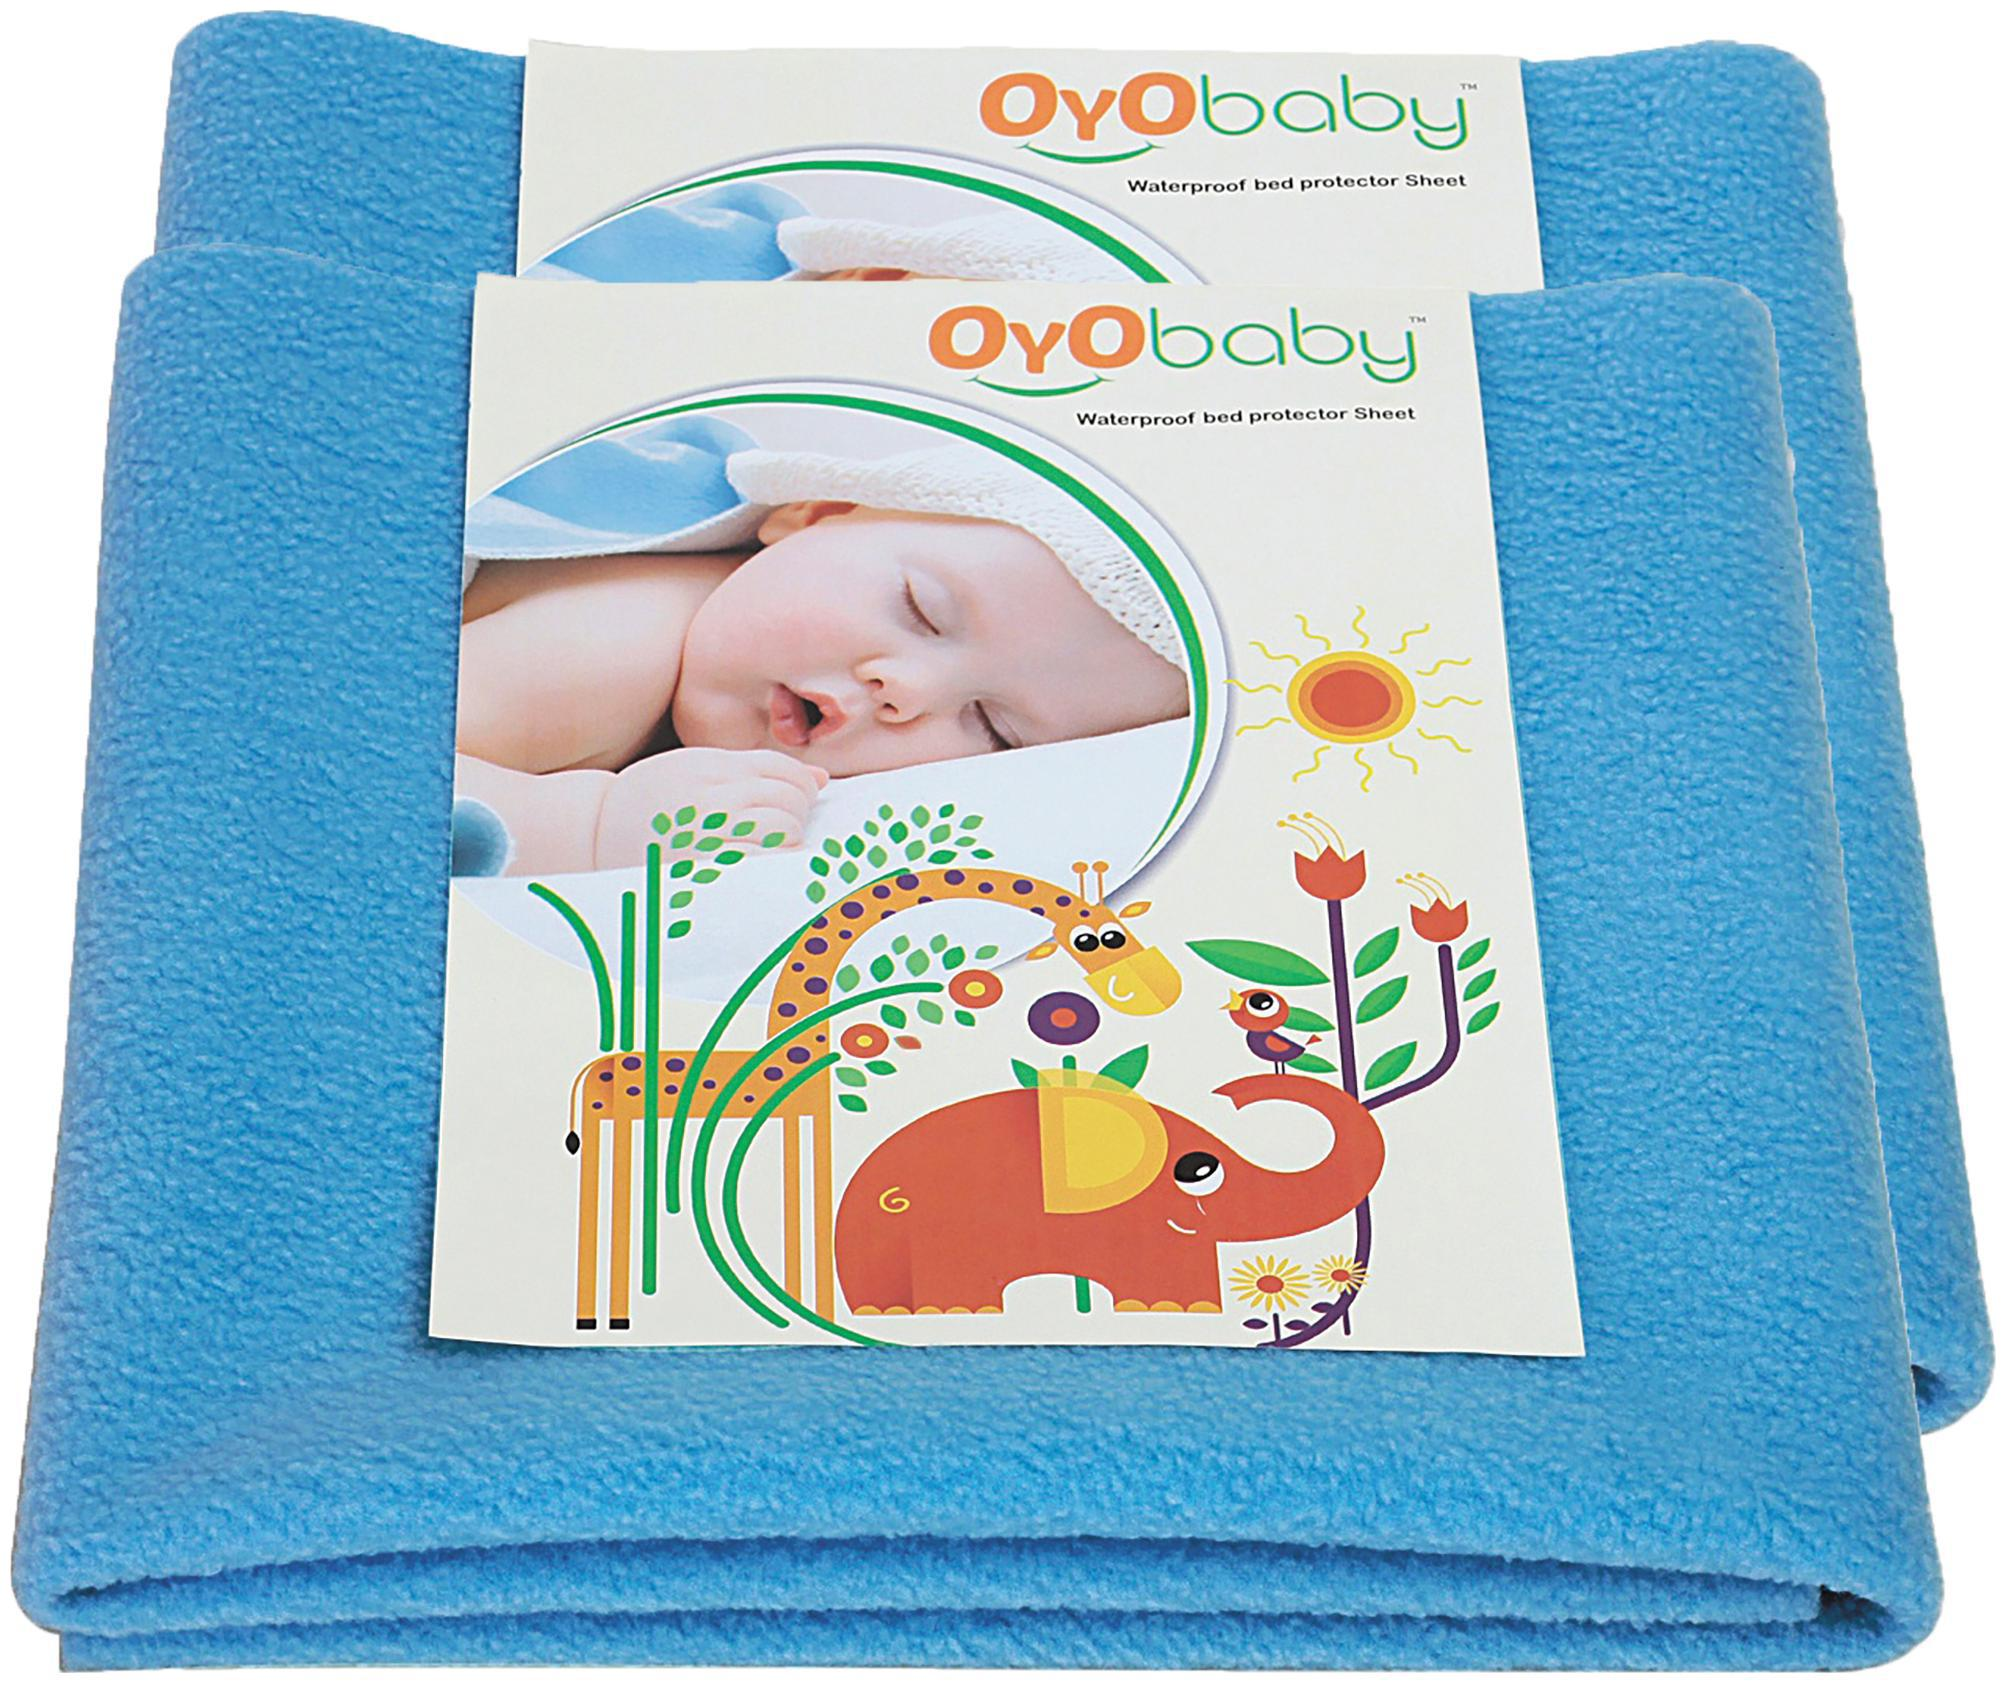 https://assetscdn1.paytm.com/images/catalog/product/F/FA/FASOYO-BABY-BABBABY11468441DD2A57A/1573644851436_0.jpg